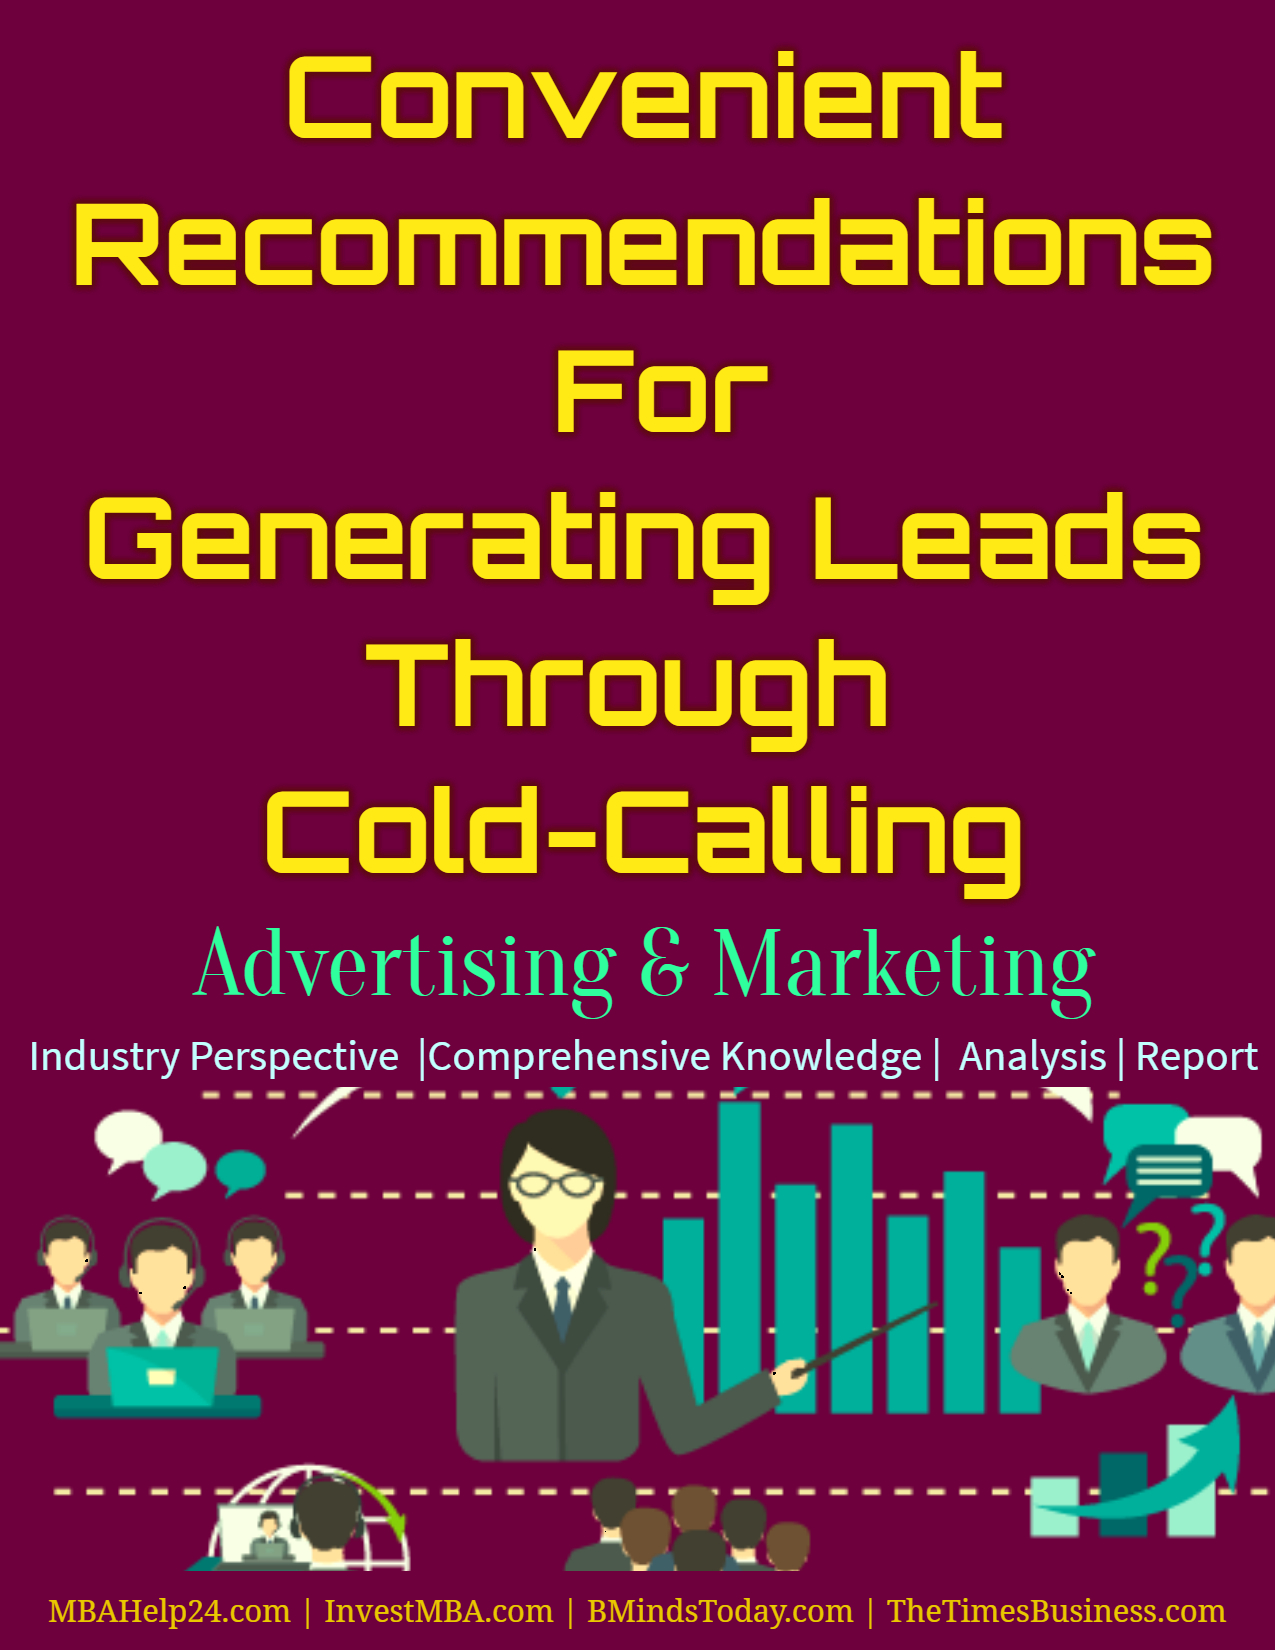 "TEN Convenient Recommendations For Generating Leads Through Cold-Calling cold calling 10 Convenient Recommendations For Generating Leads Through "" Cold Calling "" Convenient Recommendations For Generating Leads Through Cold Calling"